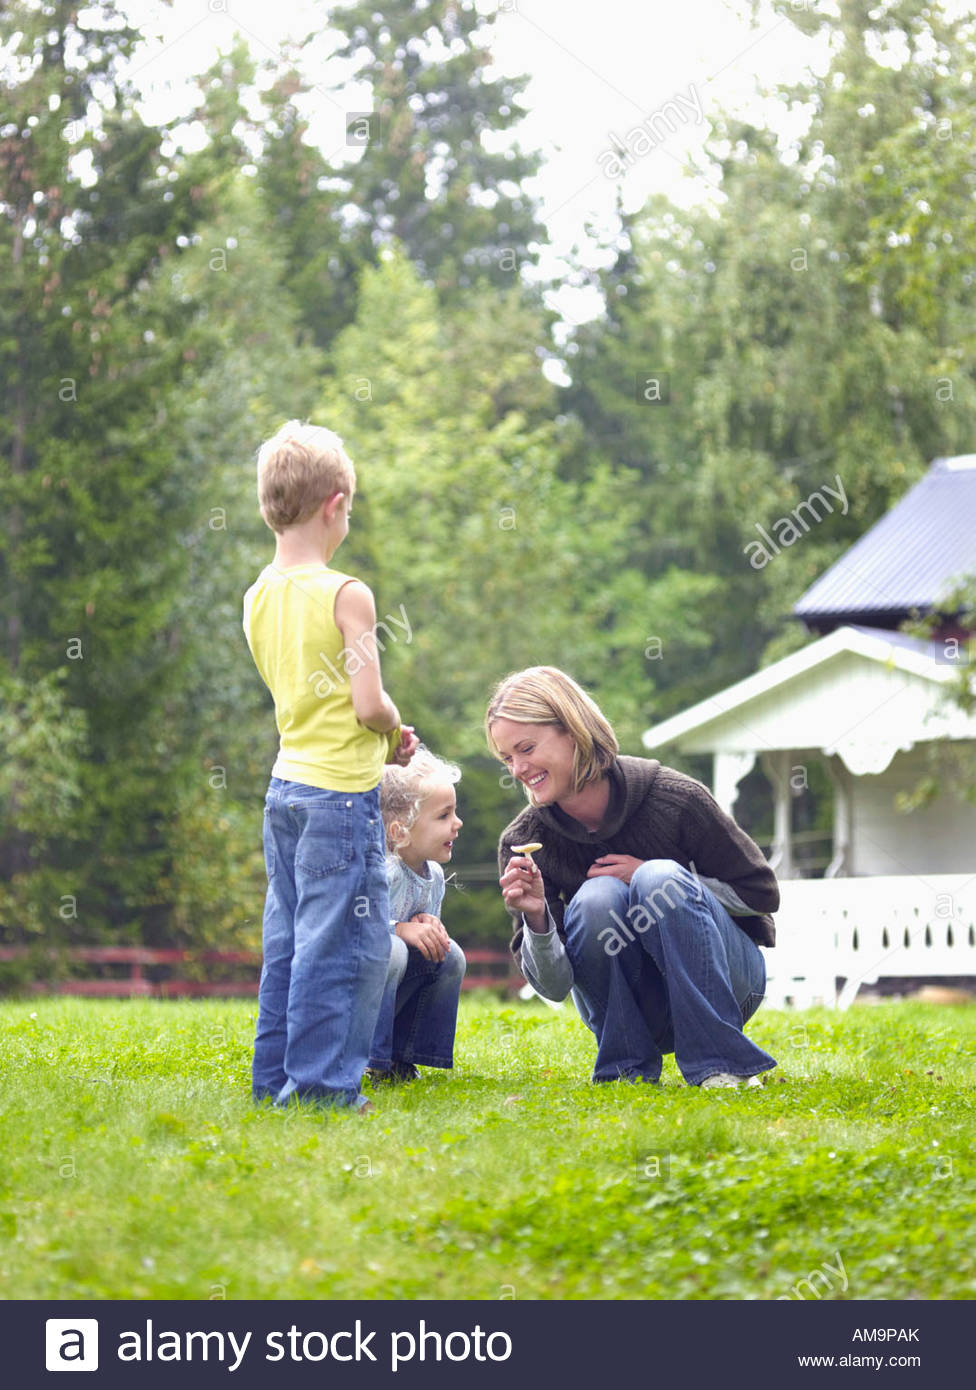 Woman with young girl and young boy in yard picking flower smiling. - Stock Image